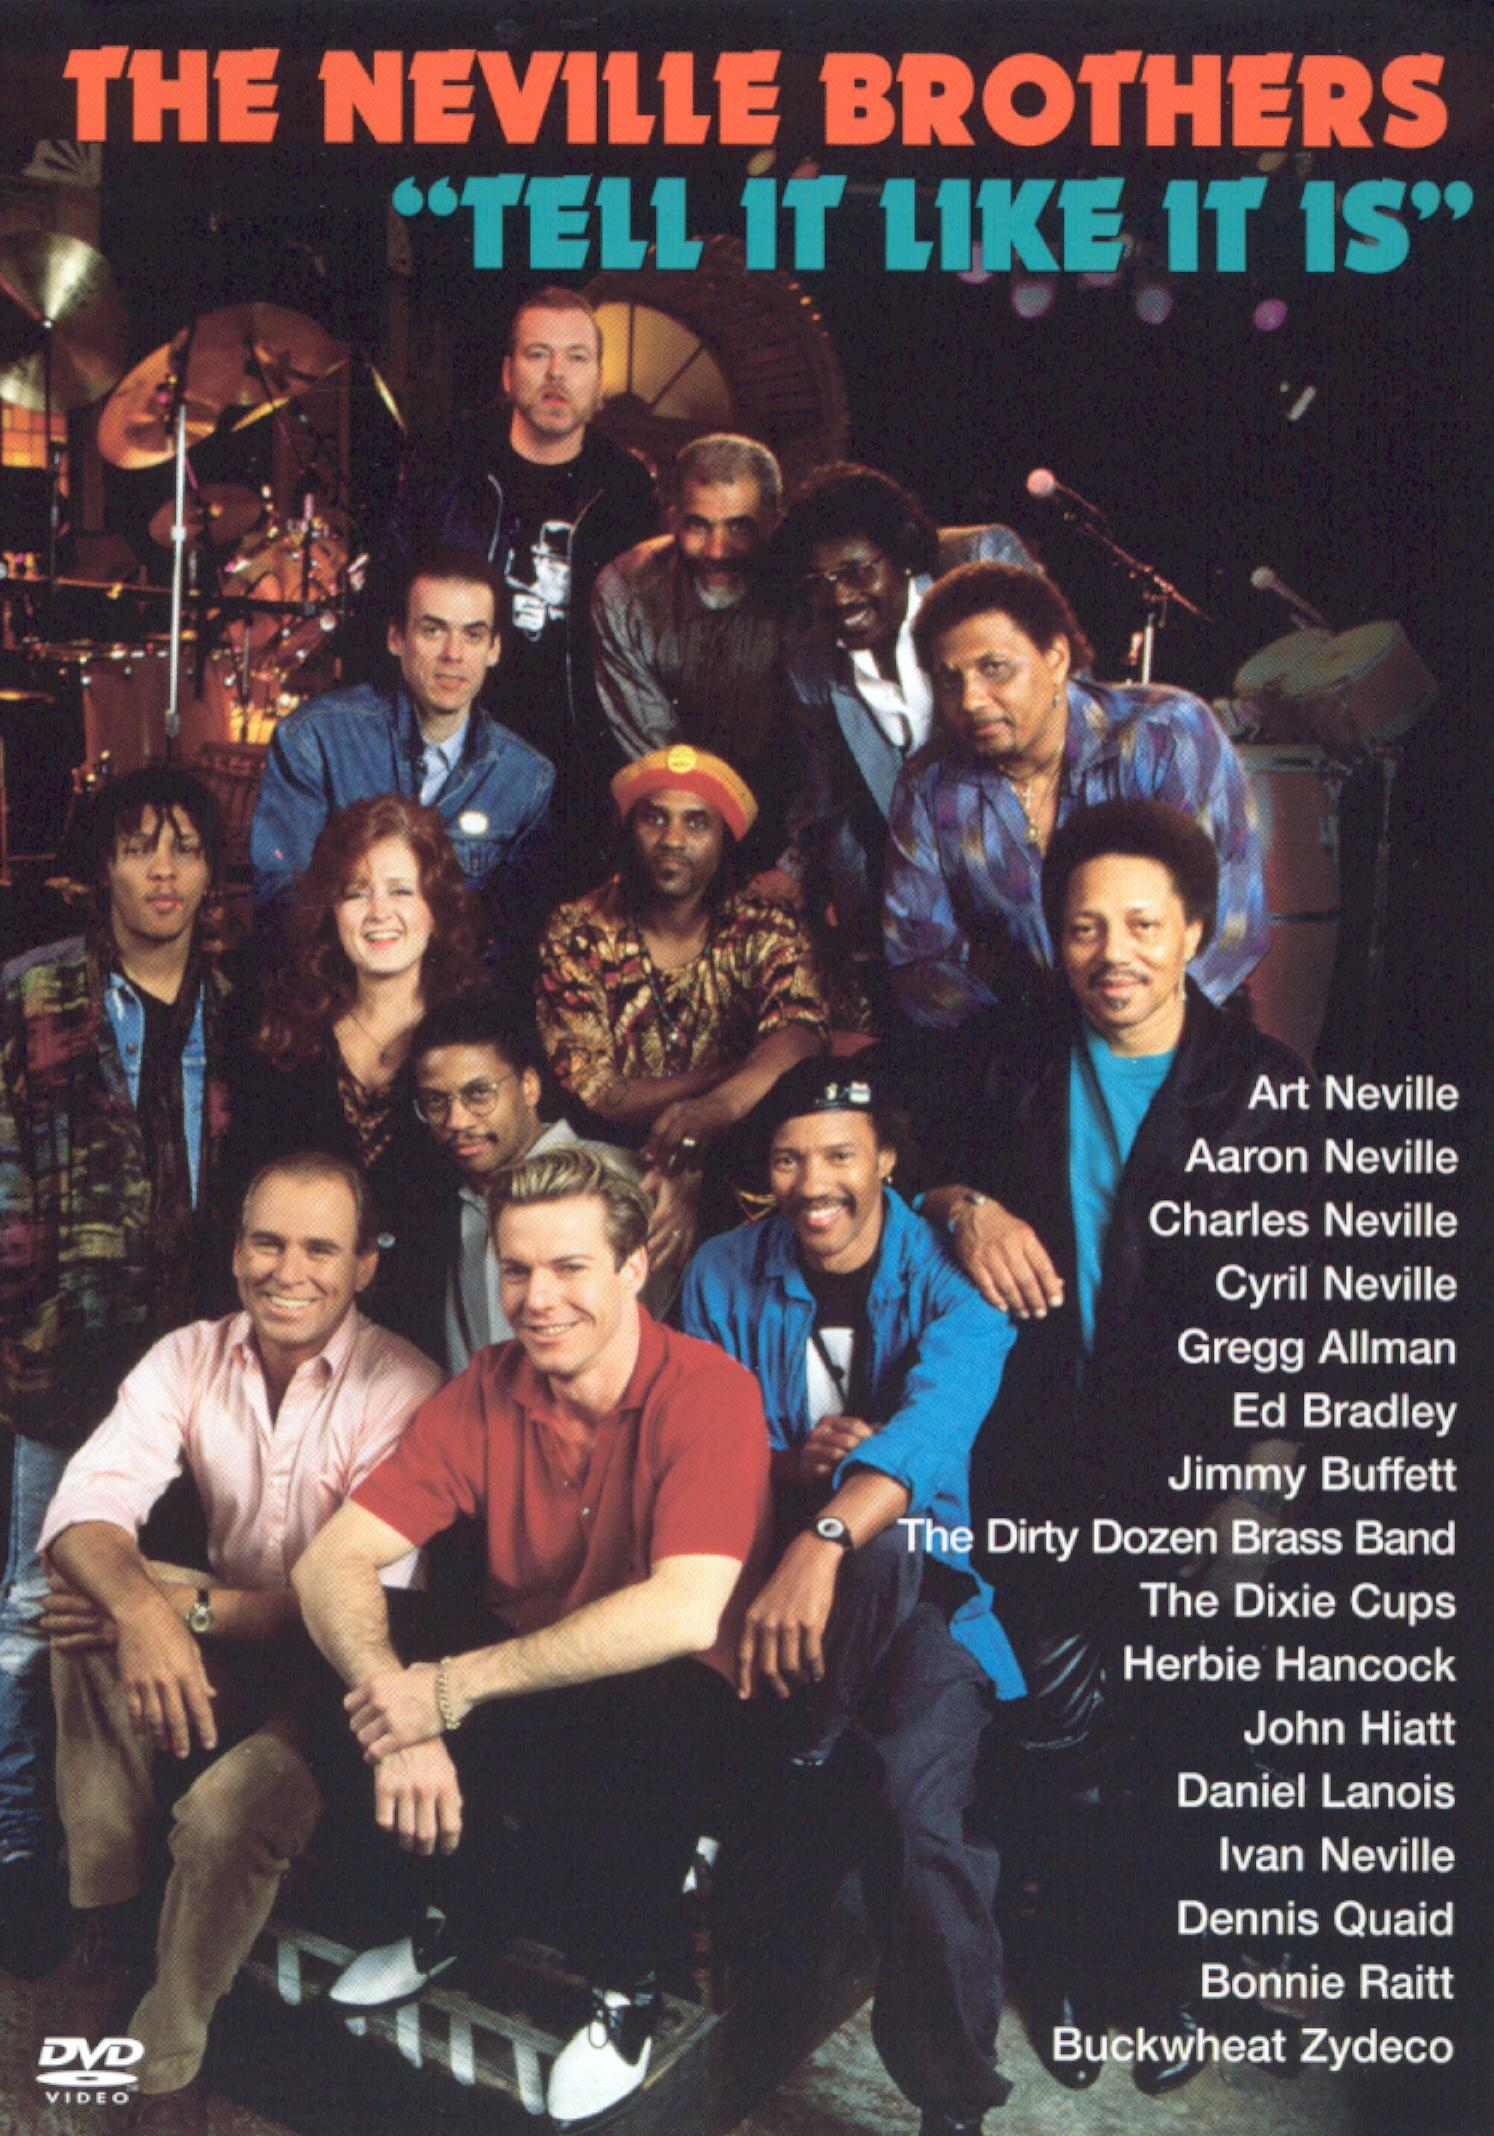 Neville Brothers & Friends: Tell it Like it Is